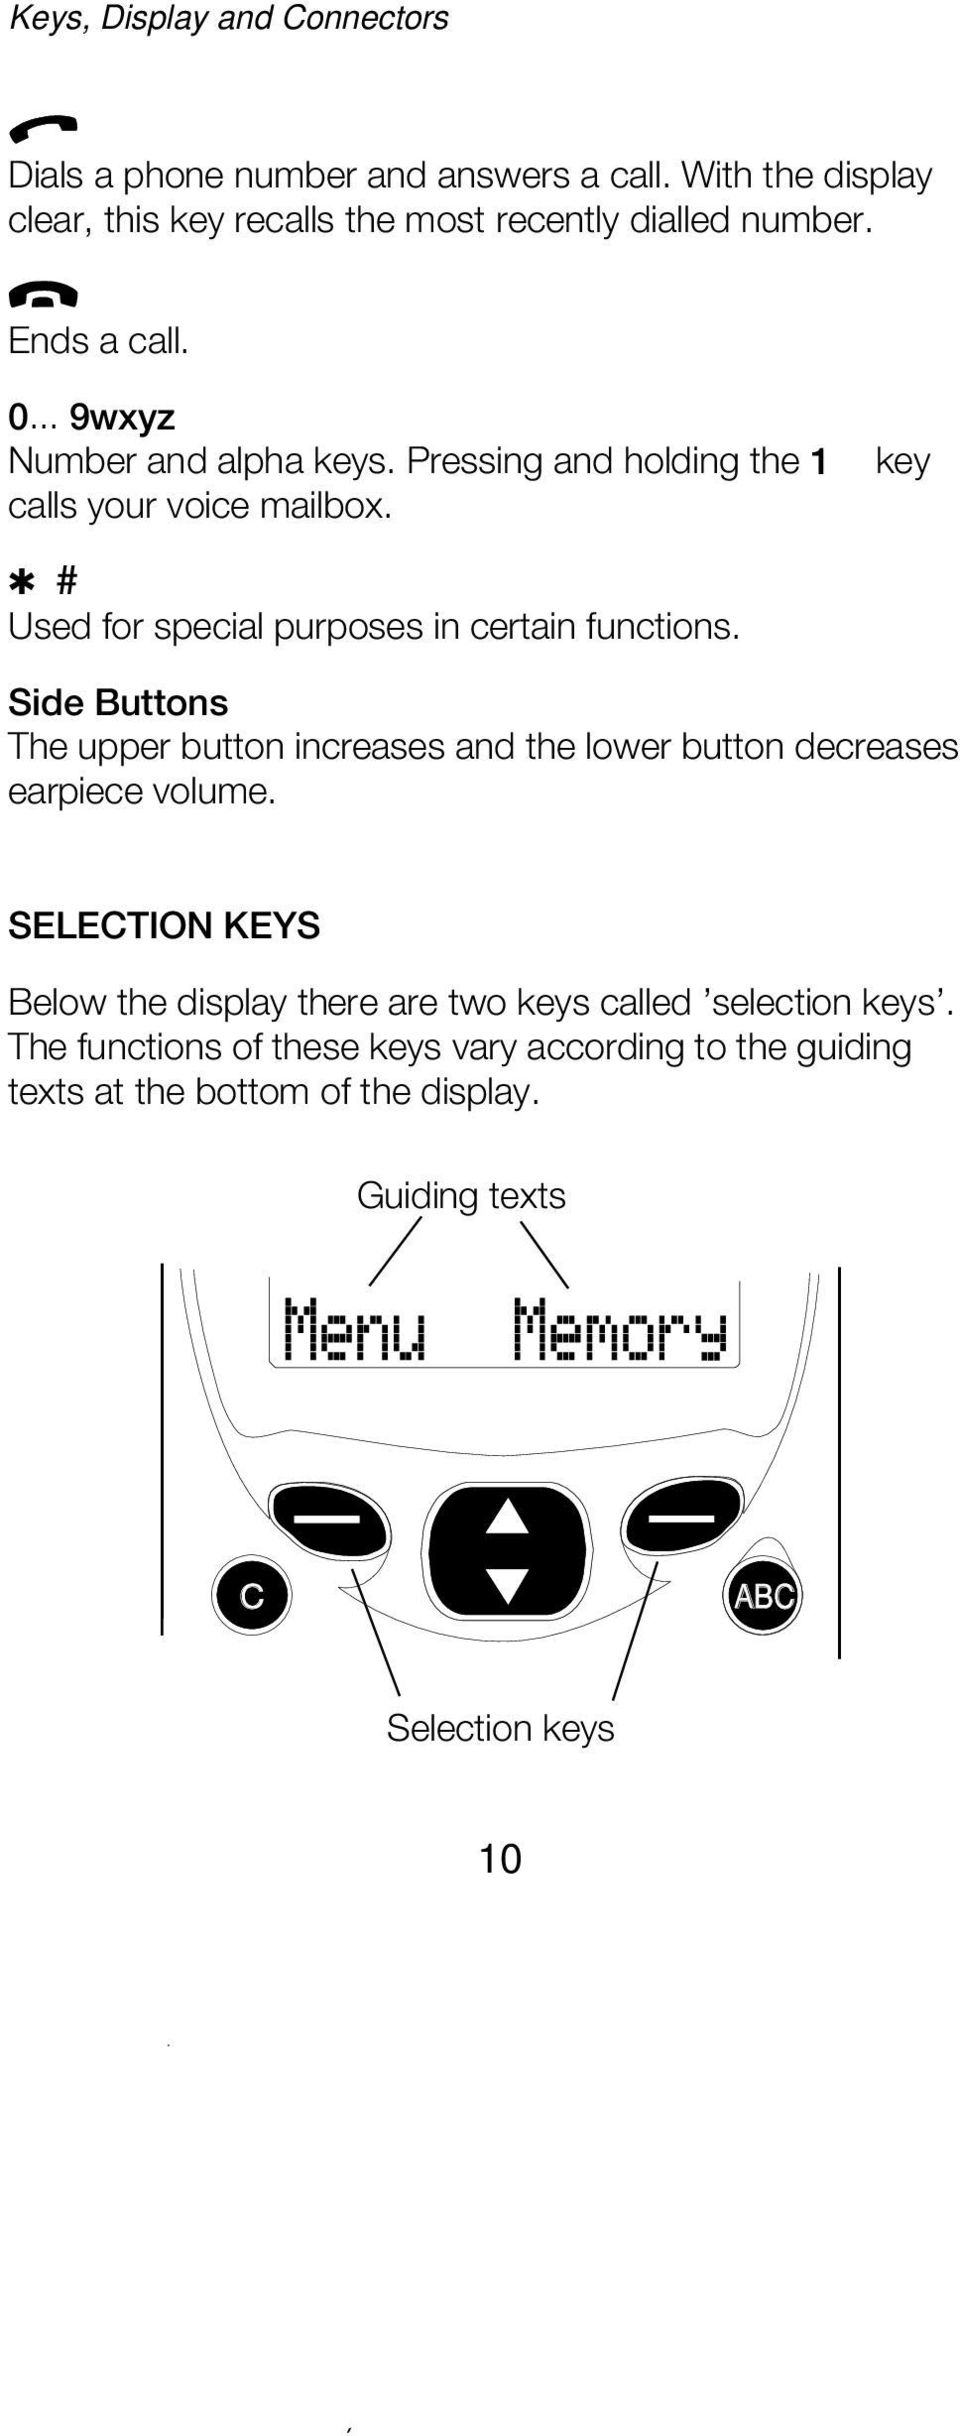 Side Buttons The upper button increases and the lower button decreases earpiece volume. SELECTION KEYS Below the display there are two keys called selection keys.